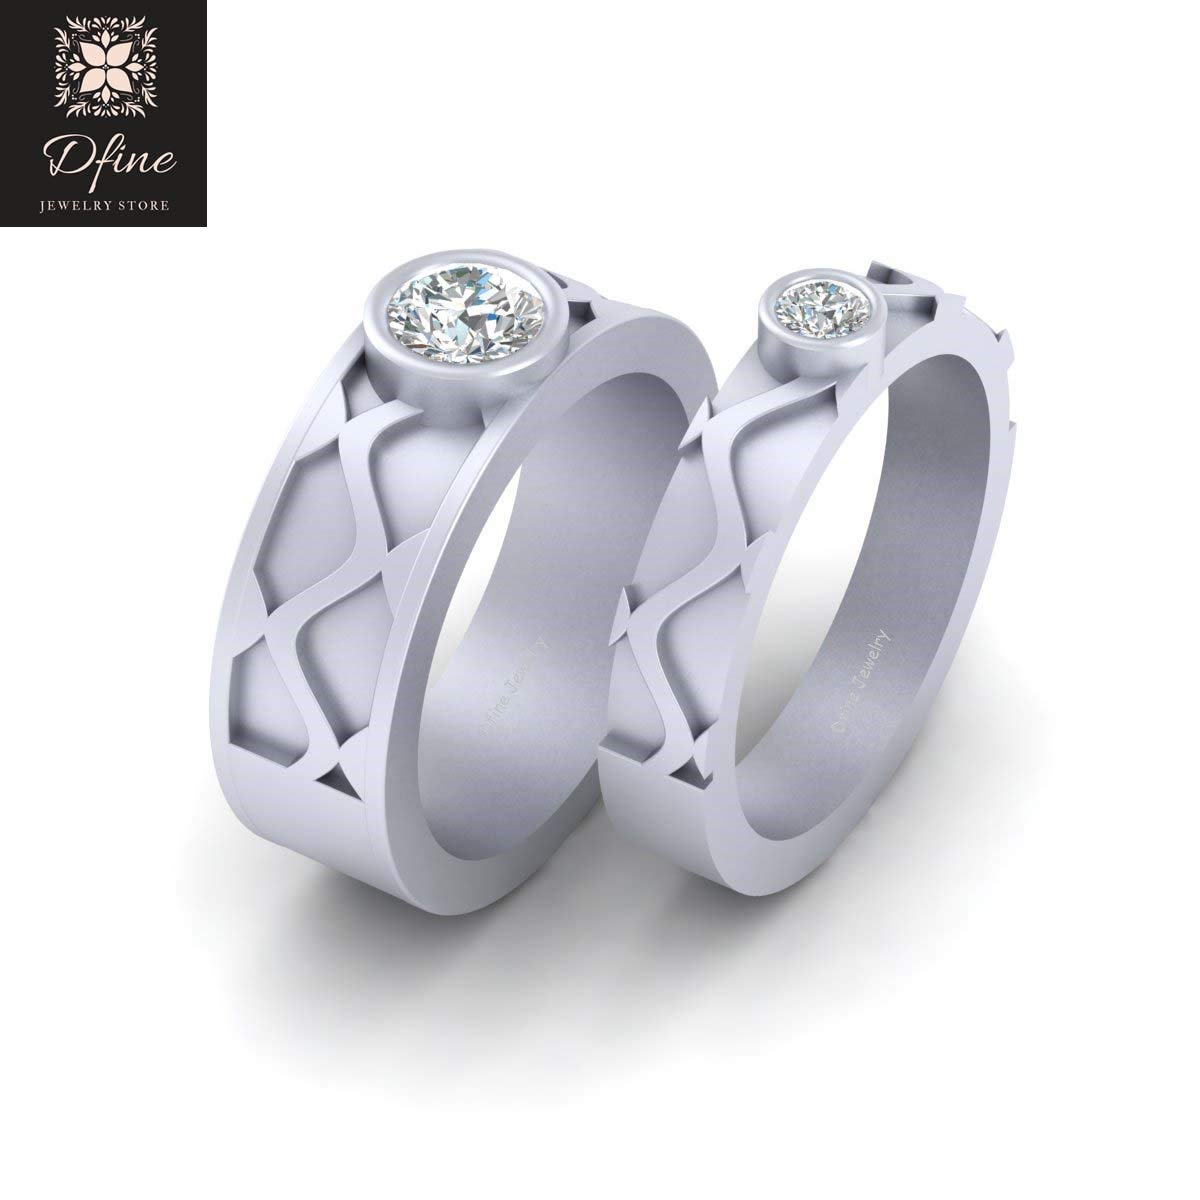 Amazon Solid 10k White Gold Matching Bride And Groom Wedding Band Set Solitaire Diamond Wavy Bands For Couple Handmade: Diamond Groom Wedding Bands At Reisefeber.org